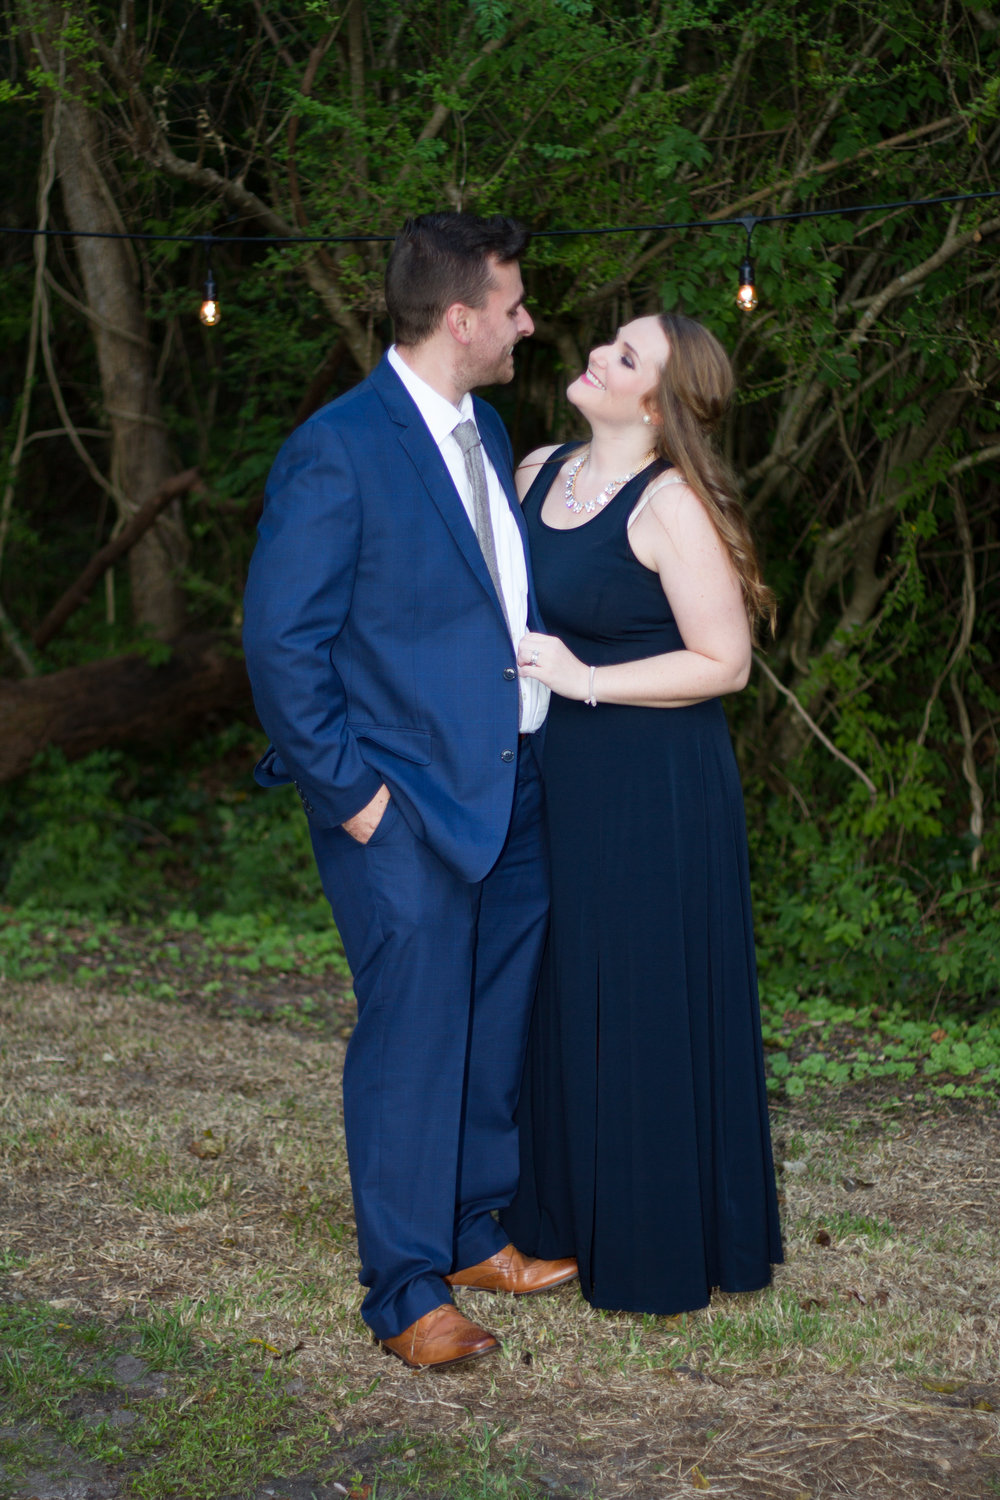 Jacqueline and Shawn Wedding (390 of 597).jpg